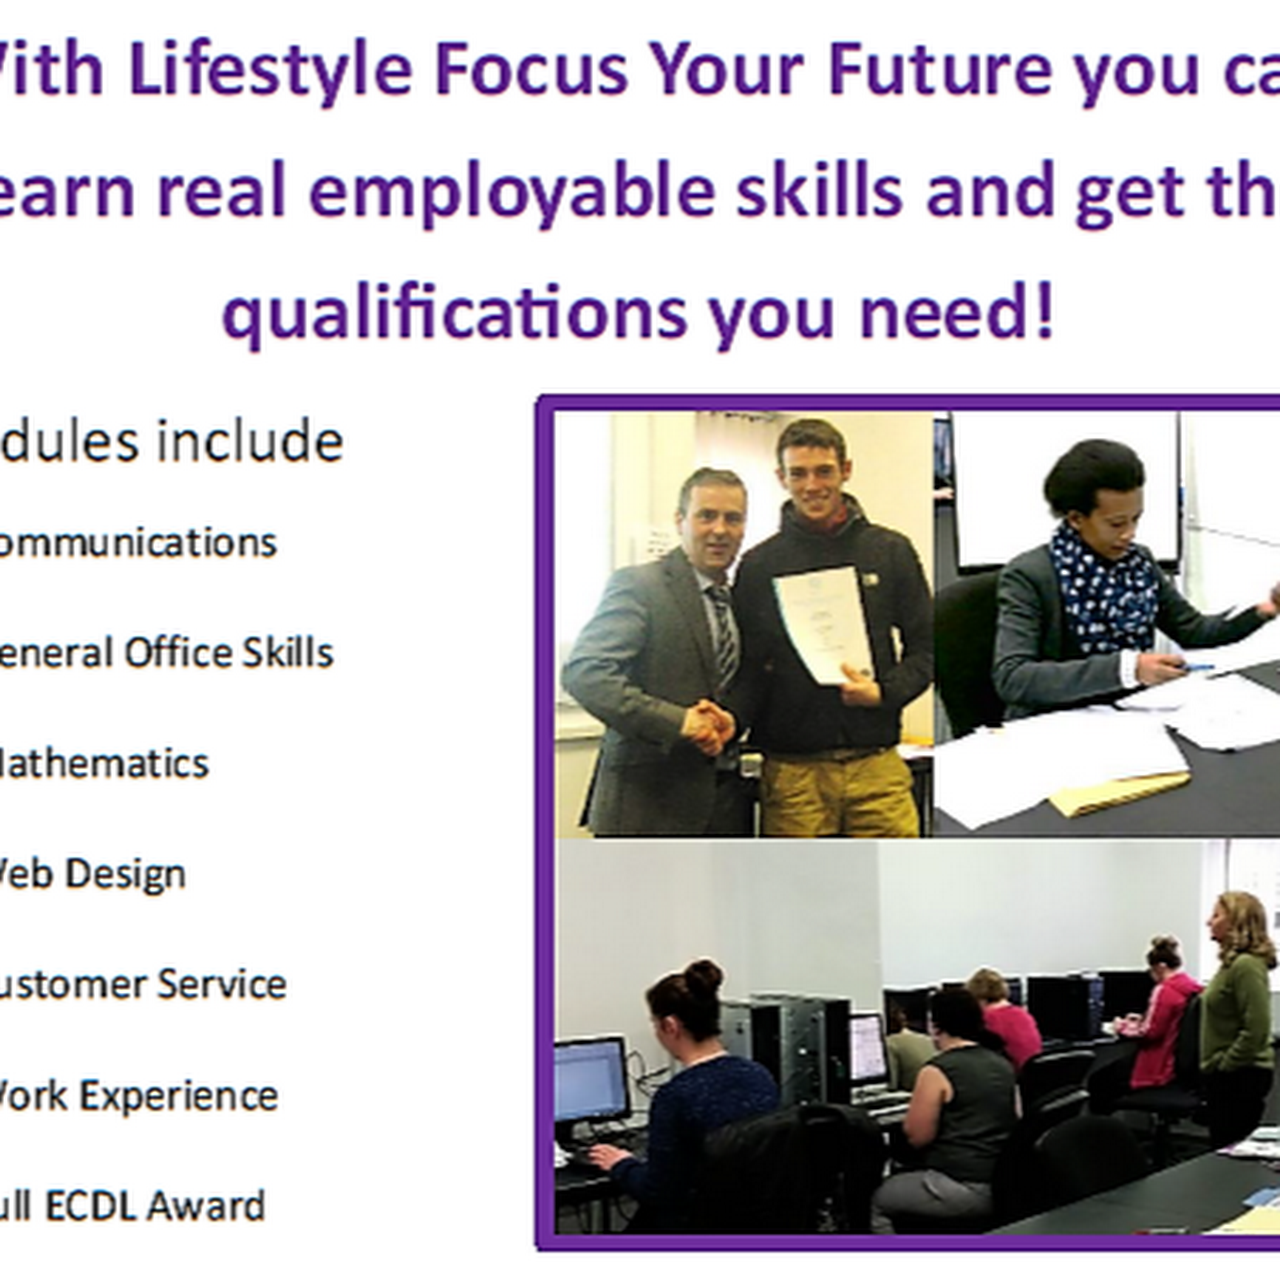 d180a0c2aef79 Lifestyle Focus Your Future - An IT/office skills programme for ...